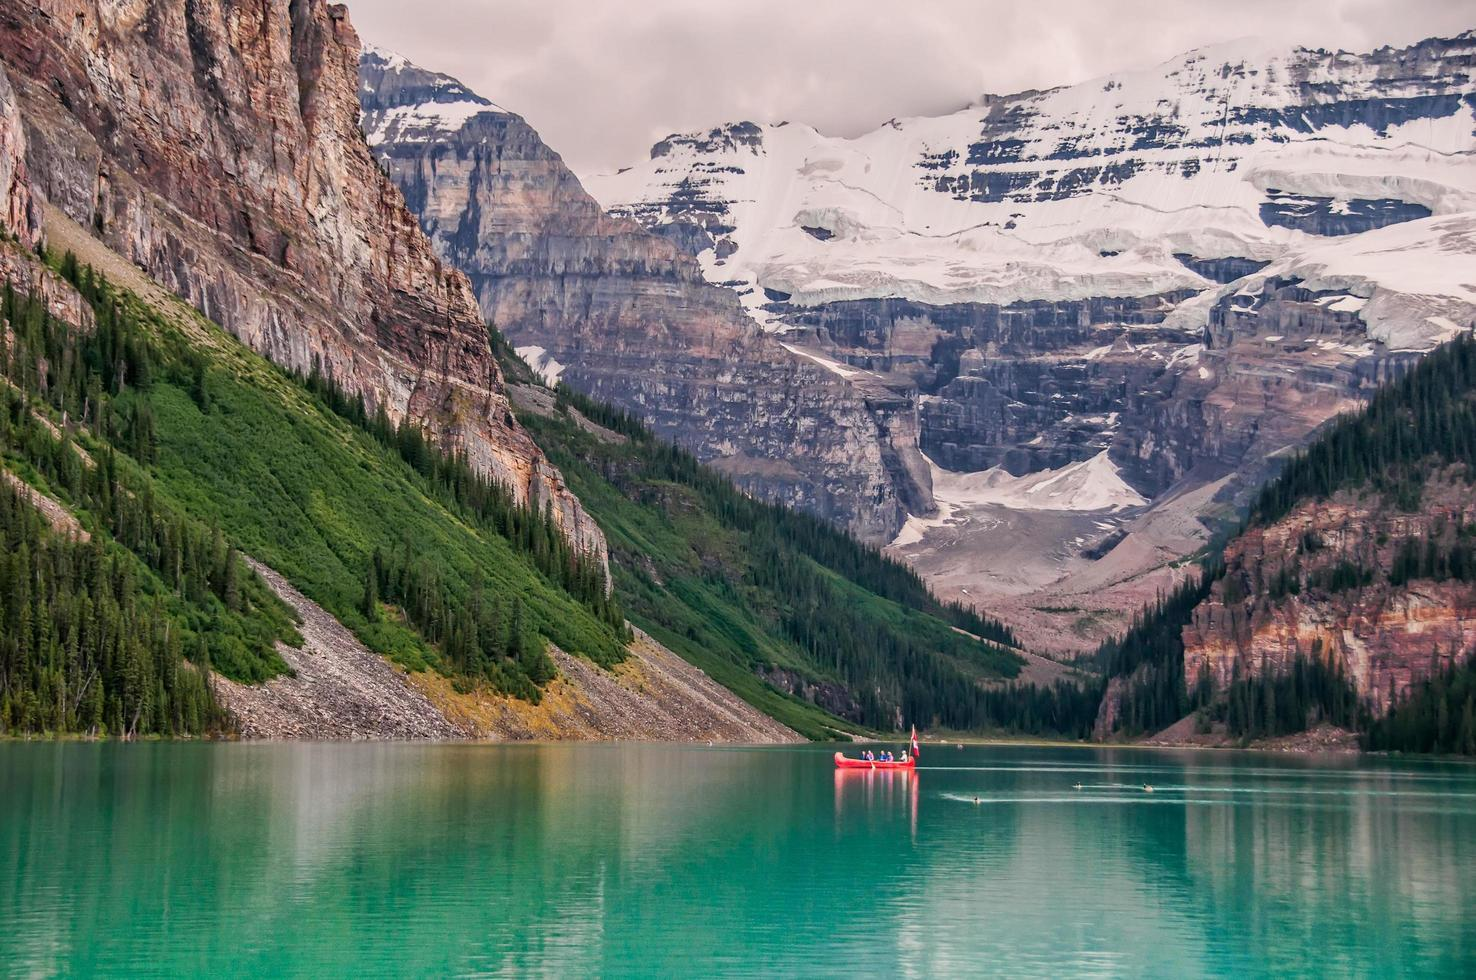 Red boat In lake in Banff National Park photo